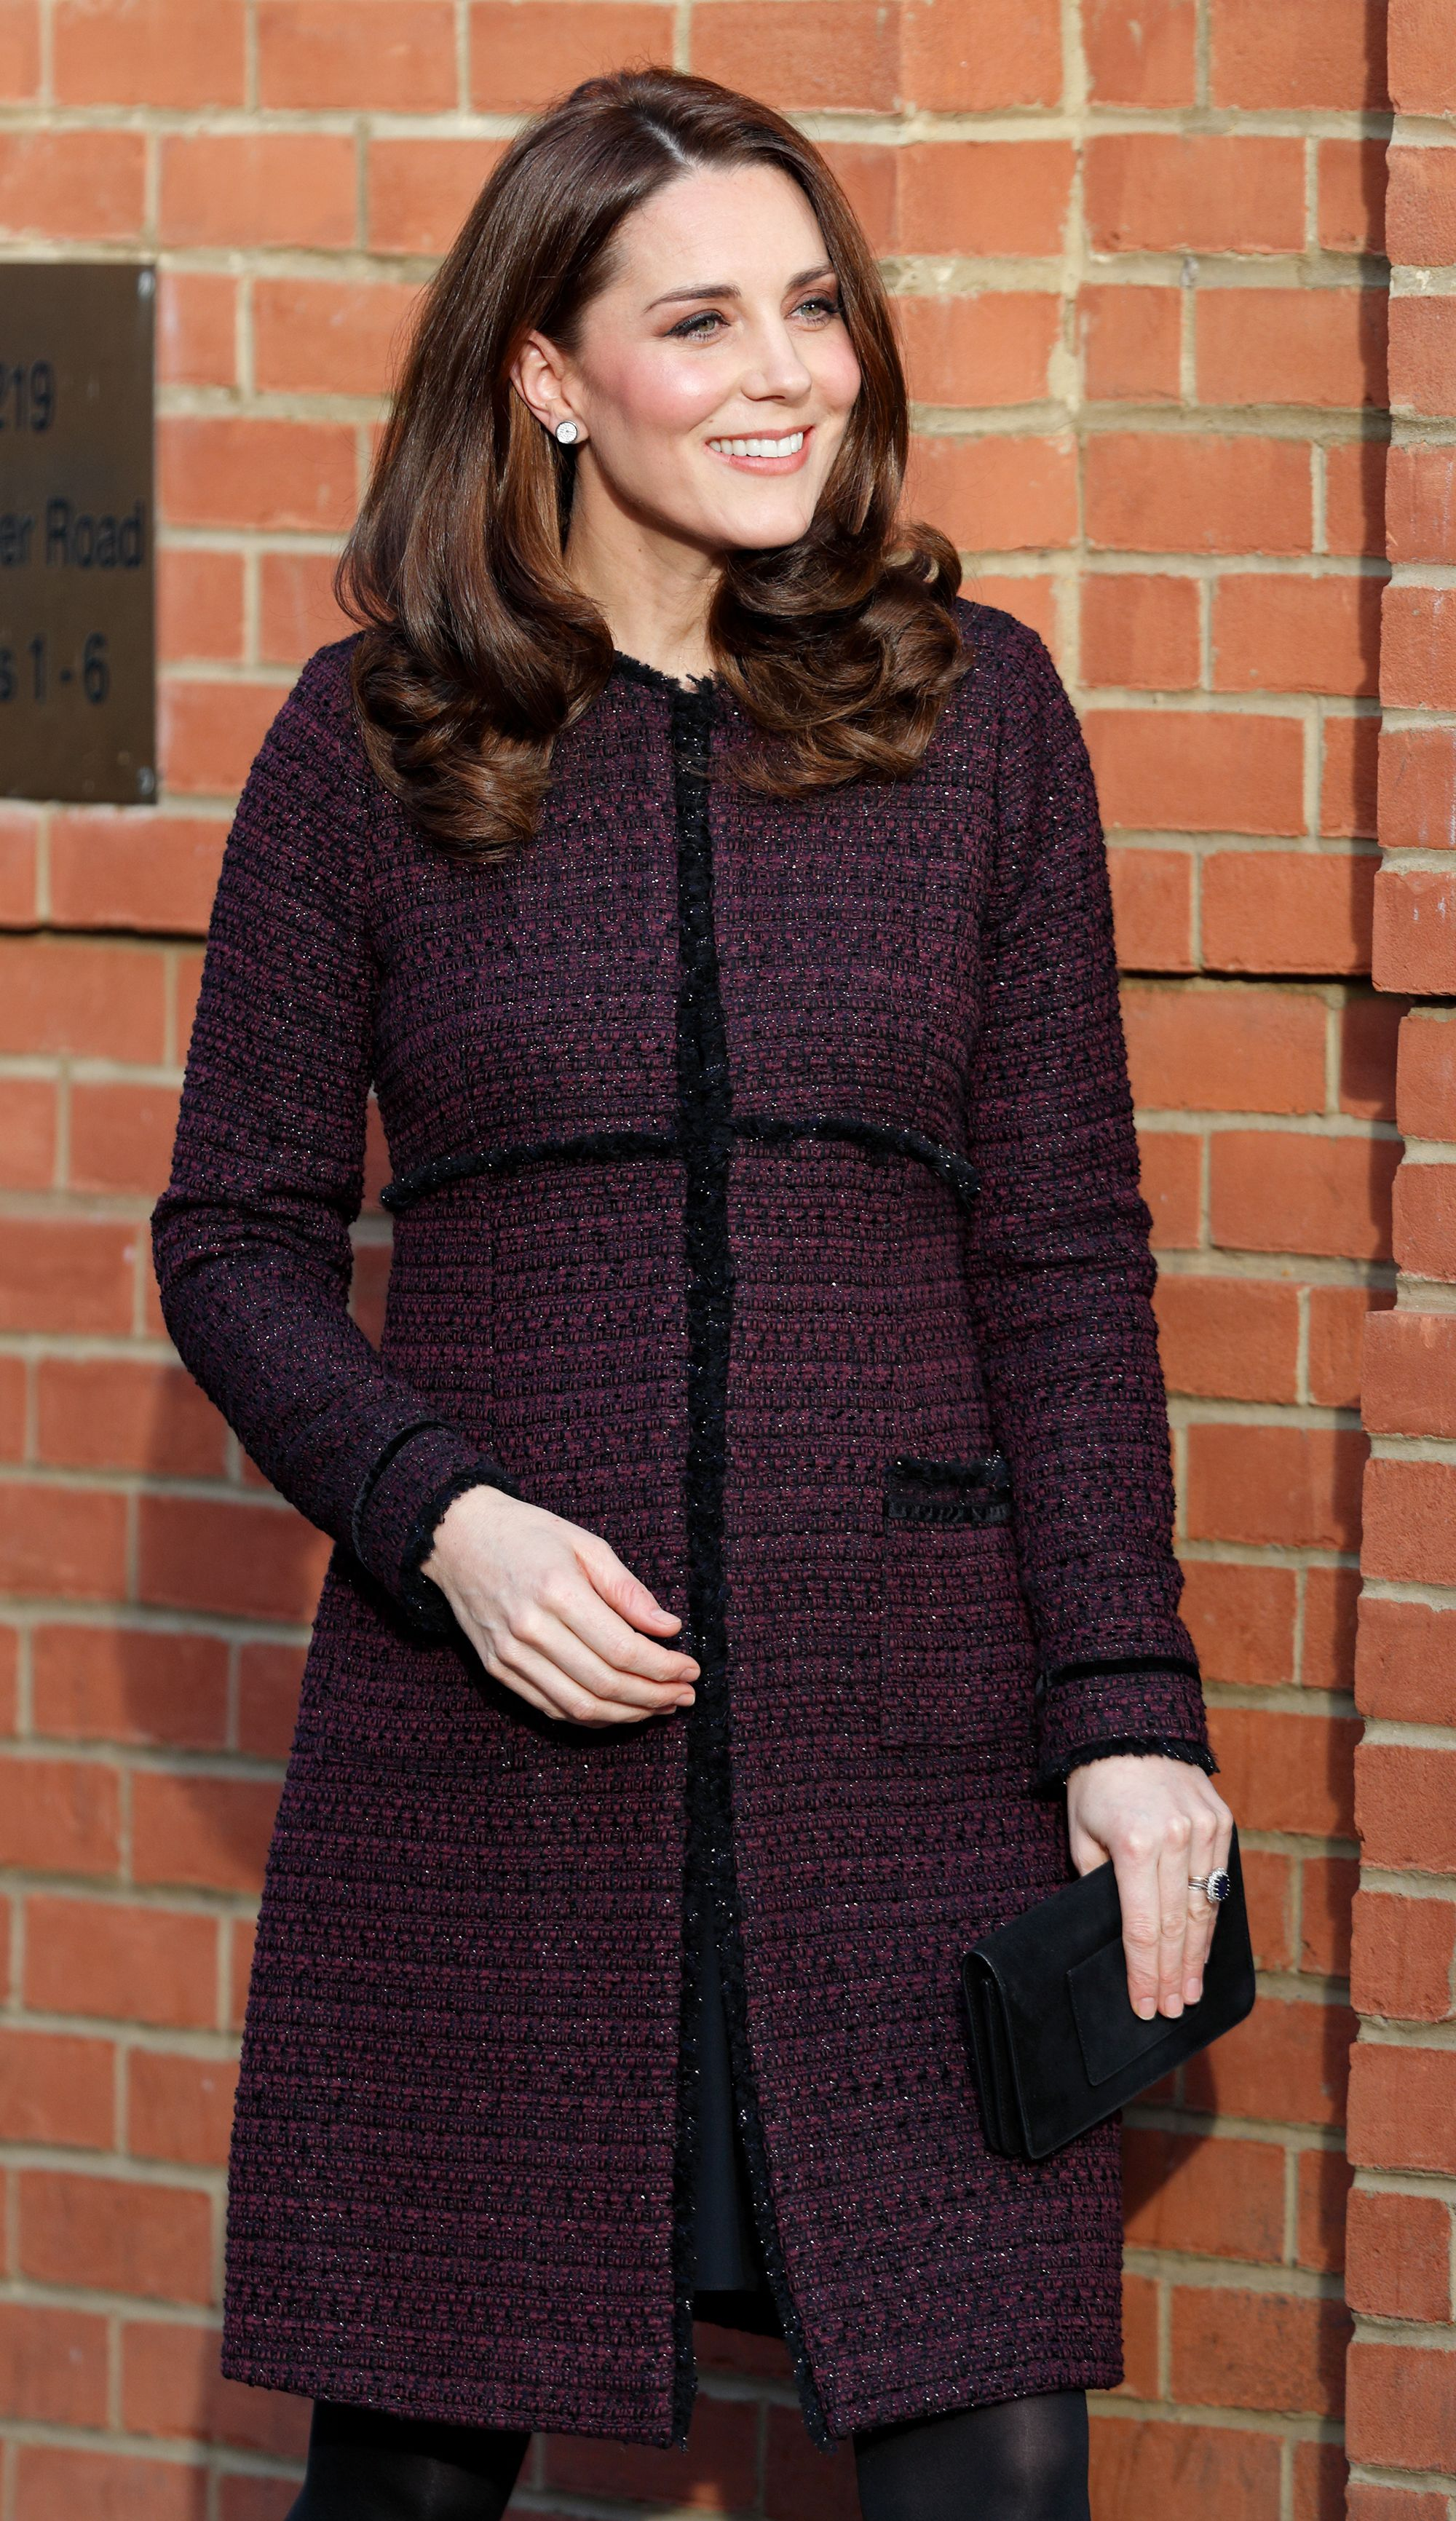 51ac4d0d4e503 Seraphine Is the Chic Maternity Brand Royals Love